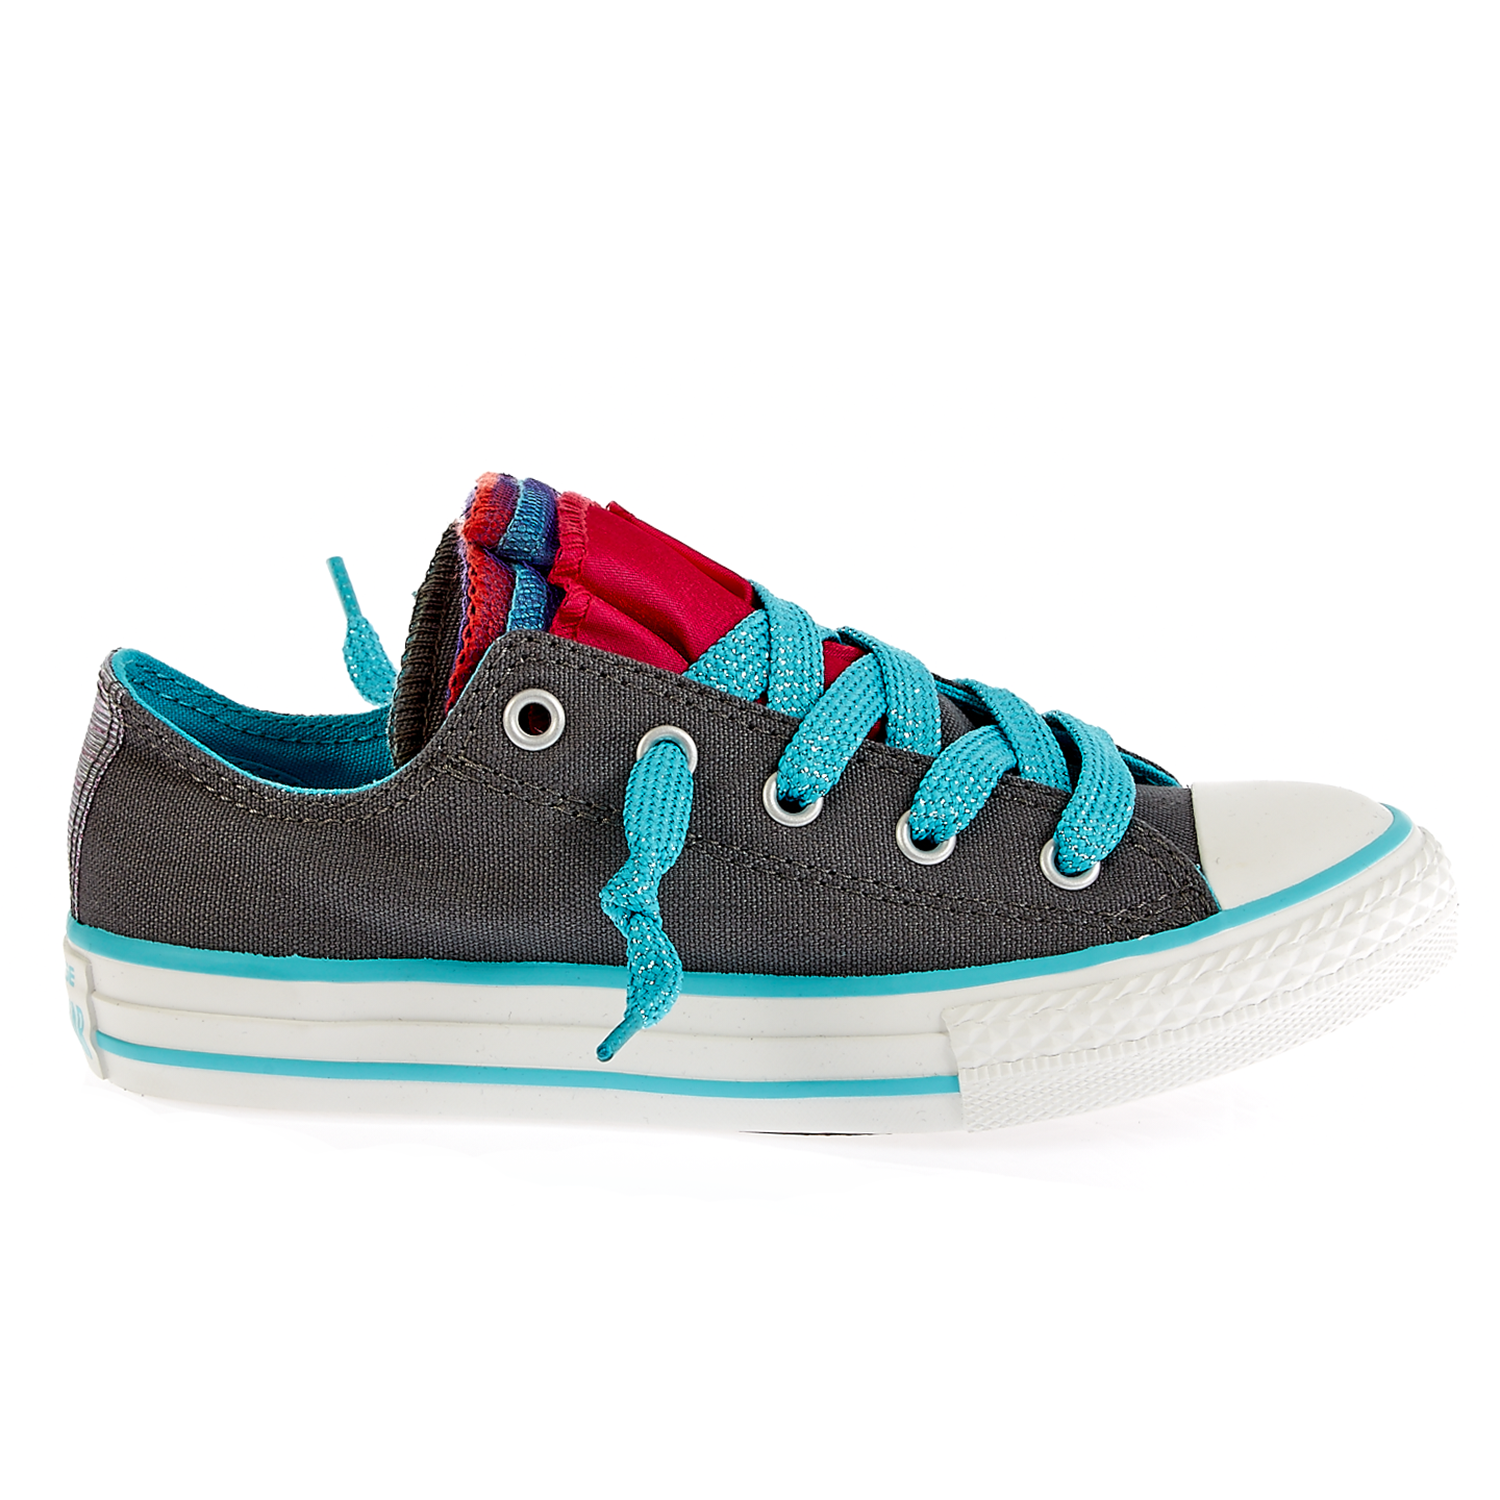 CONVERSE – Παιδικά παπούτσια Chuck Taylor ανθρακί